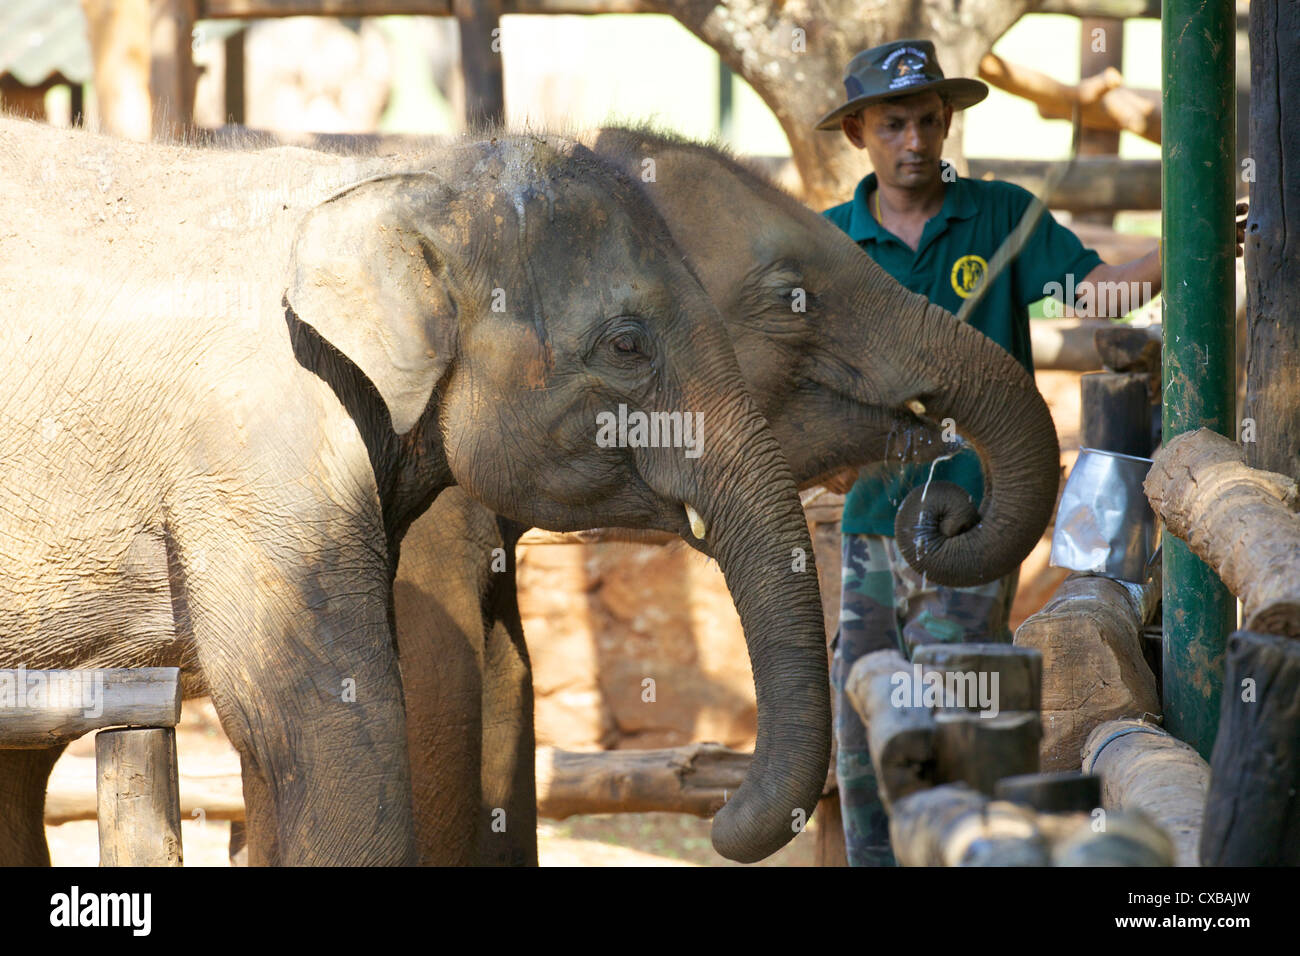 Baby Asian elephants being fed, Uda Walawe Elephant Transit Home, Sri Lanka, Asia - Stock Image